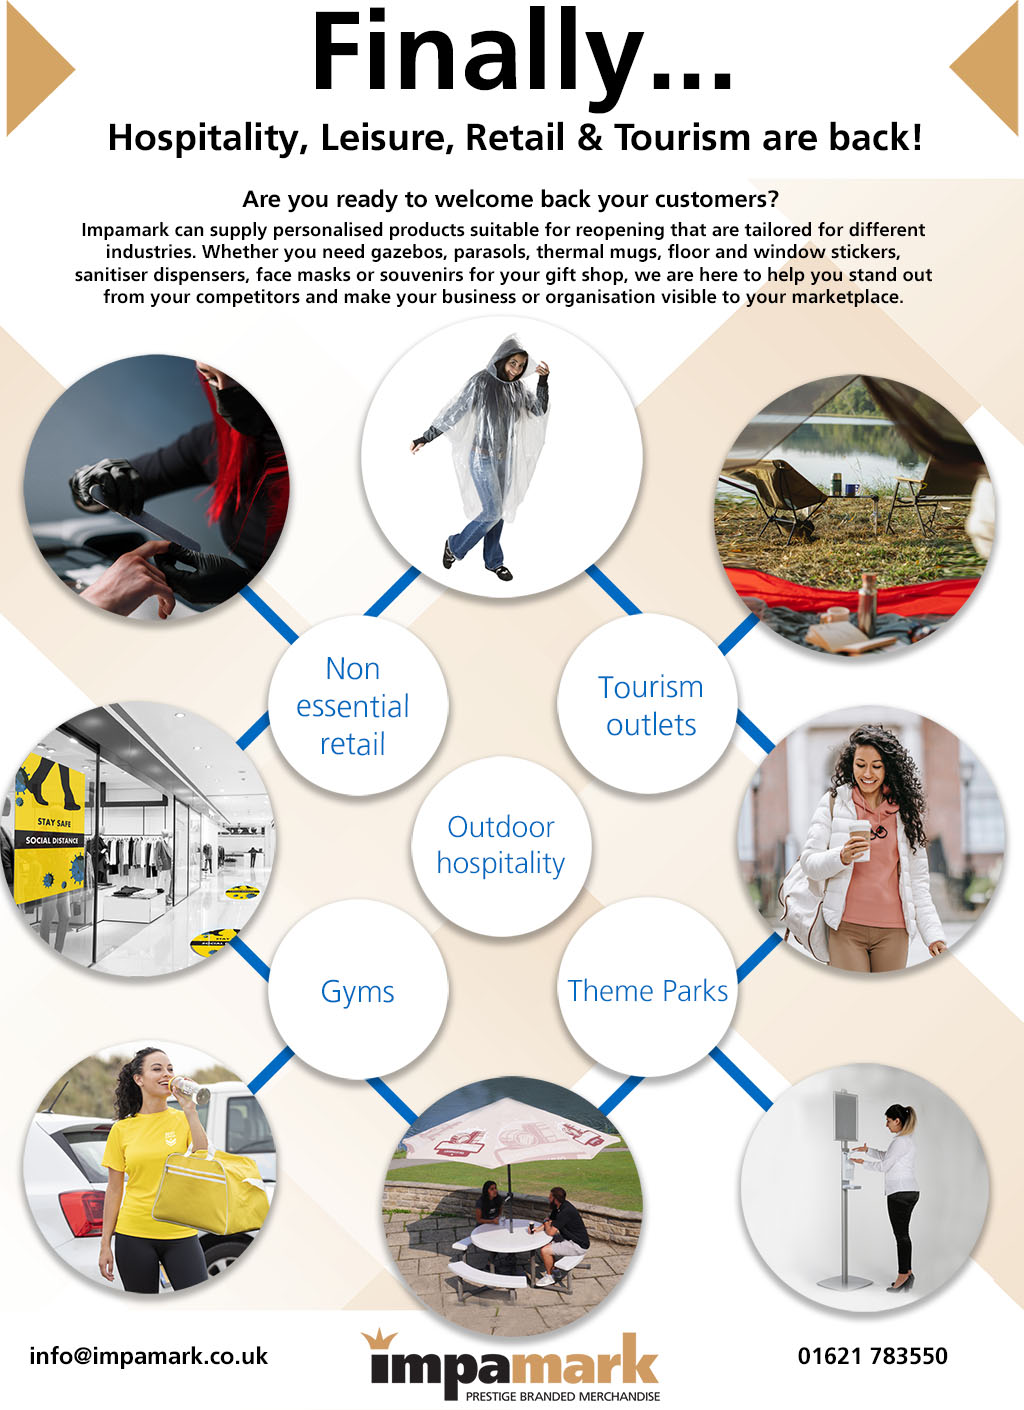 If you can not see this image please visit https://www.impamark-promotional-merchandise.co.uk/blog/roadmap2